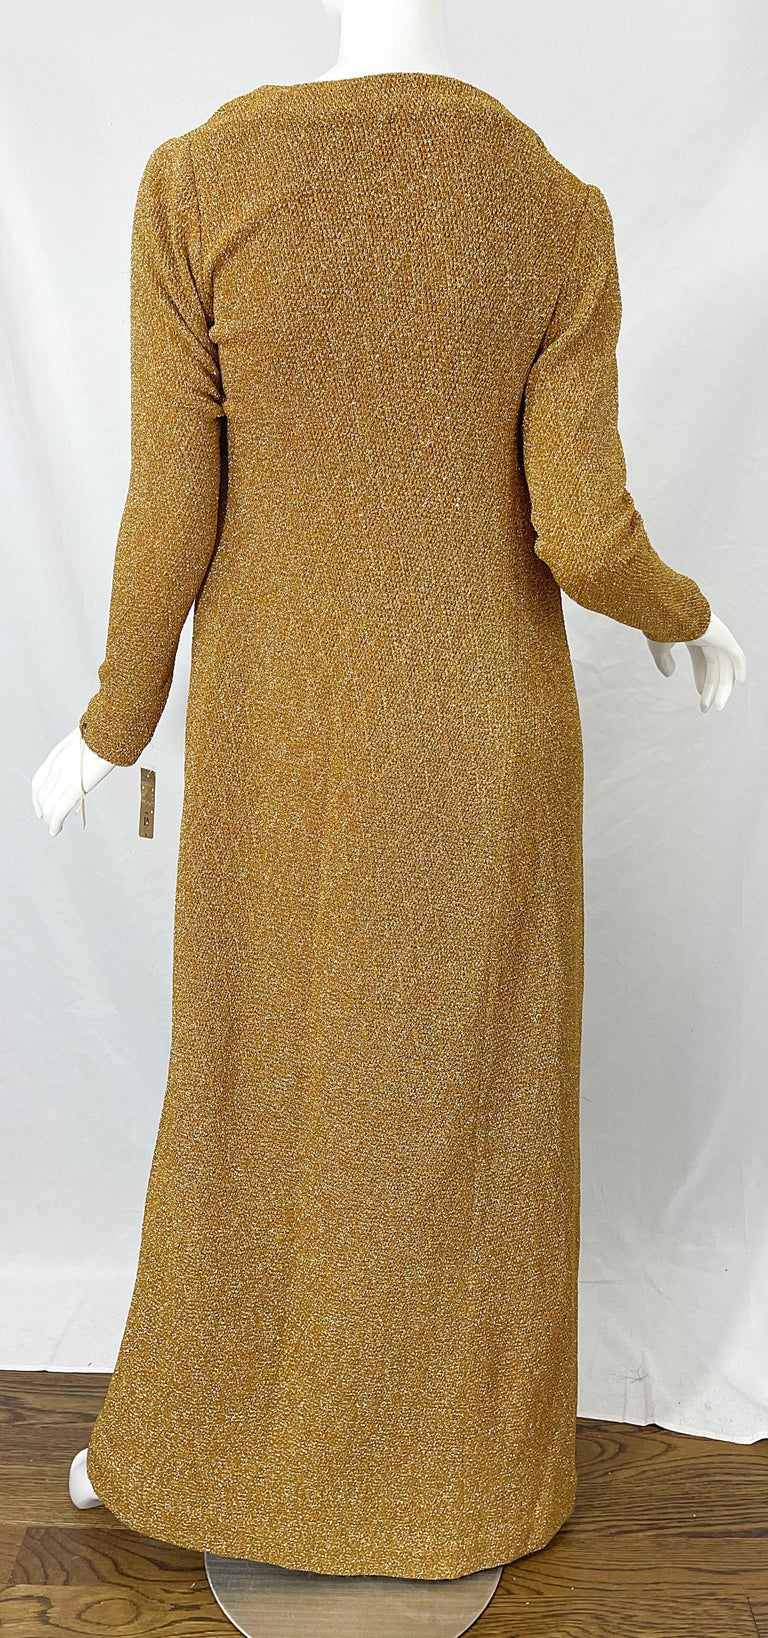 1970s Halston NWT Gold + Silver 70s Vintage Lurex Gown + Duster Cardigan For Sale 6